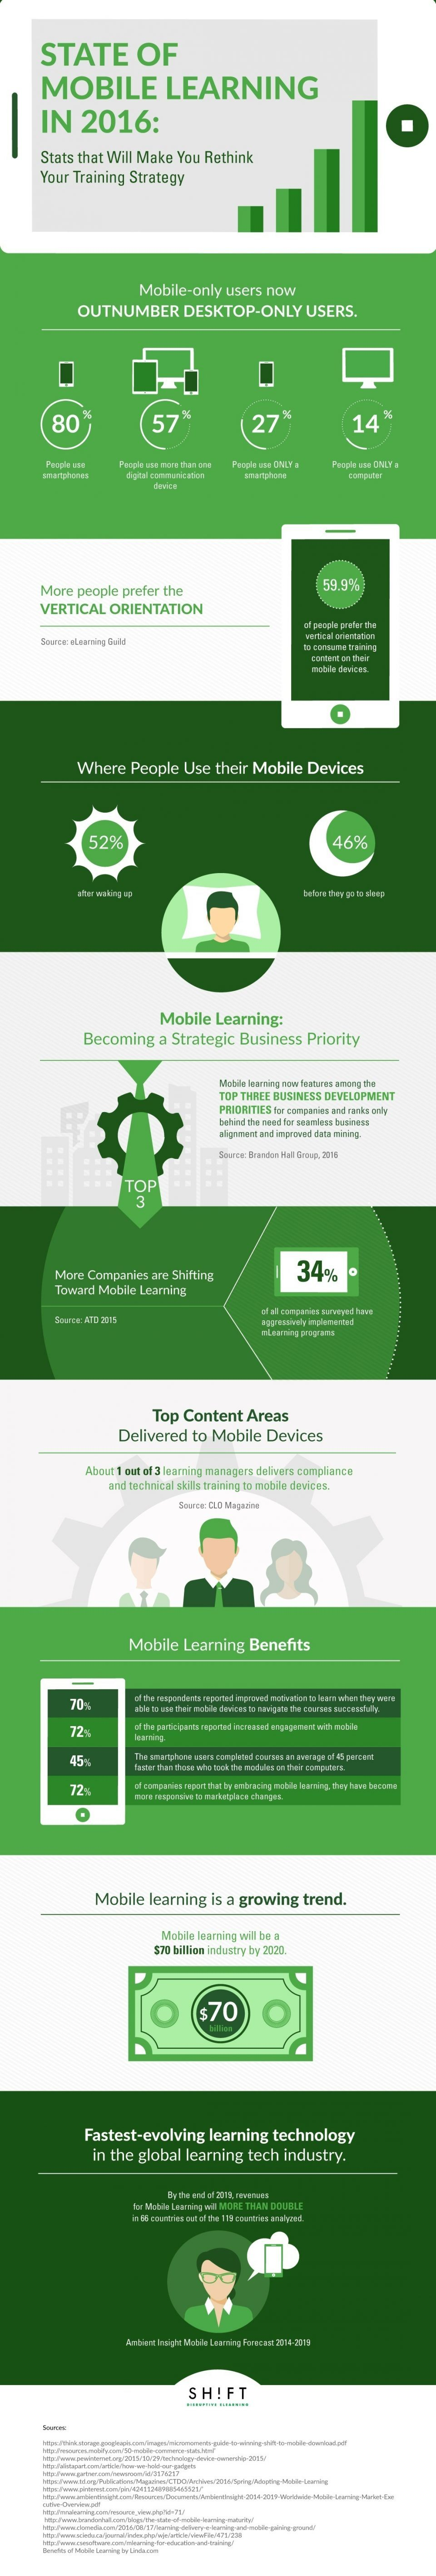 State of Mobile Learning in 2016 Infographic